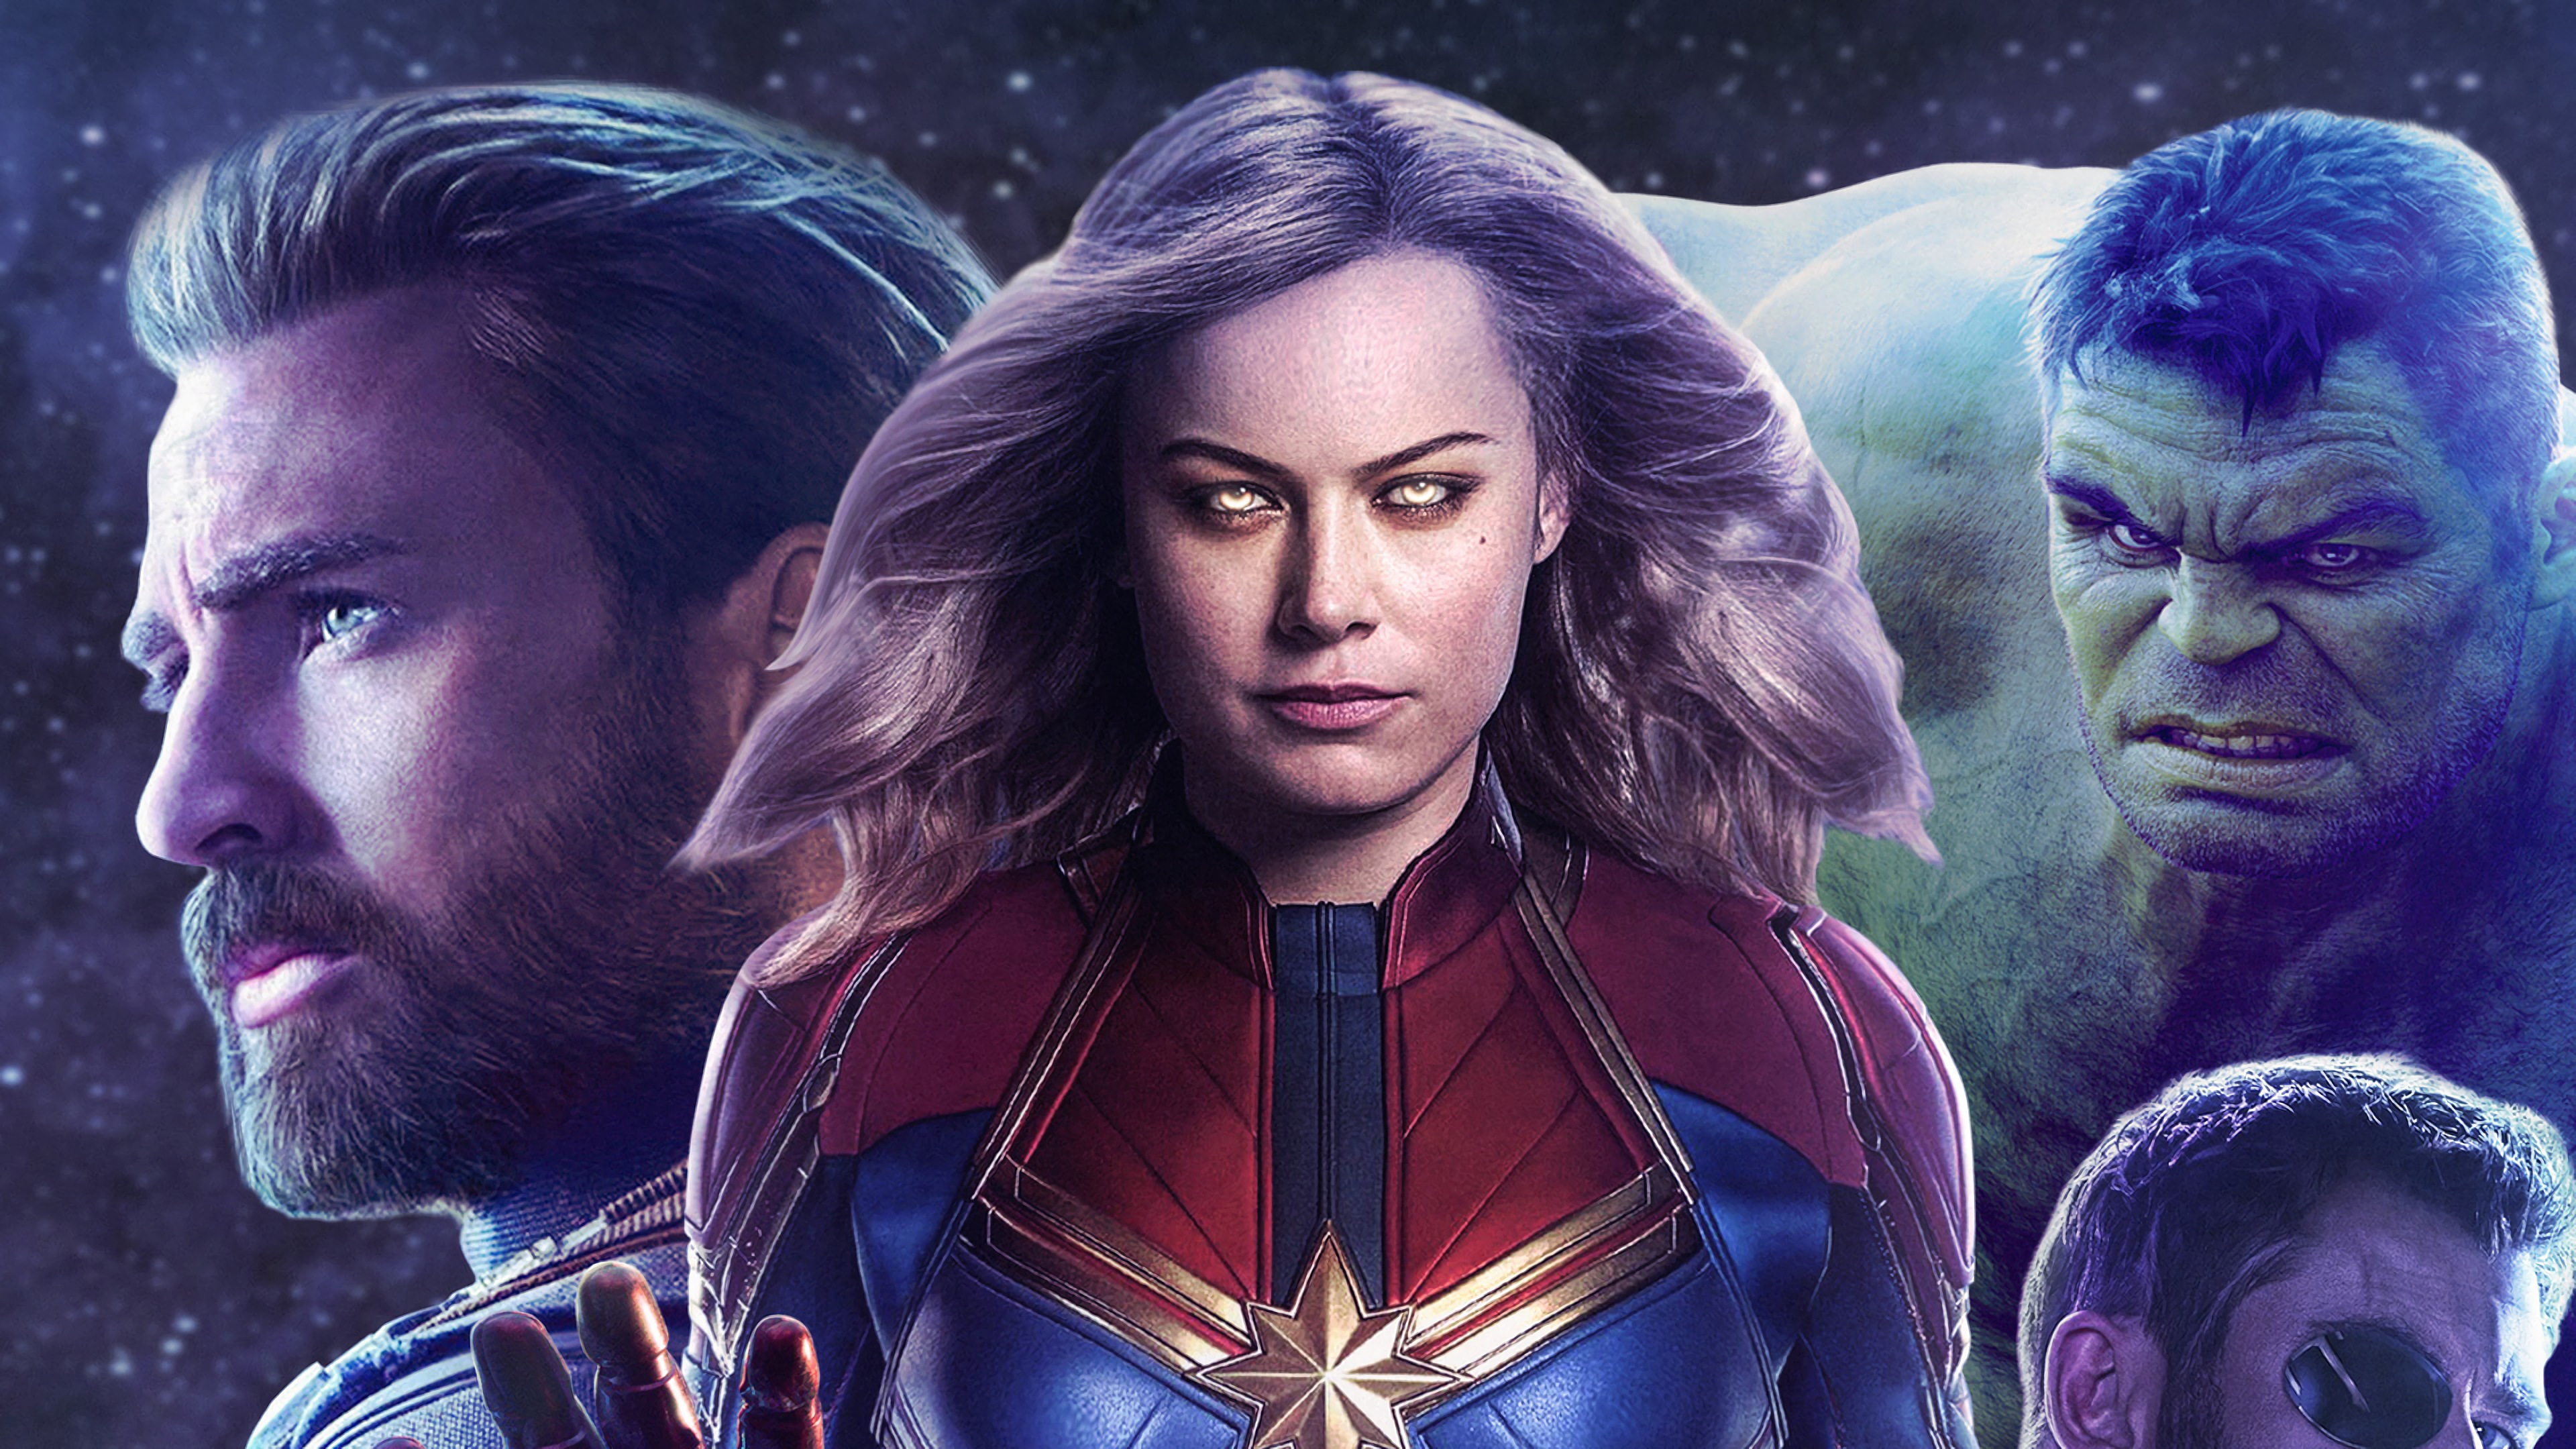 captain marvel movie 2019 hulk captain america 4k wallpaper 1544829331 - Captain Marvel Movie 2019 Hulk Captain America 4K Wallpaper - The Hulk, Captain Marvel (Movie 2019), Captain Marvel (Carol Danvers), captain america